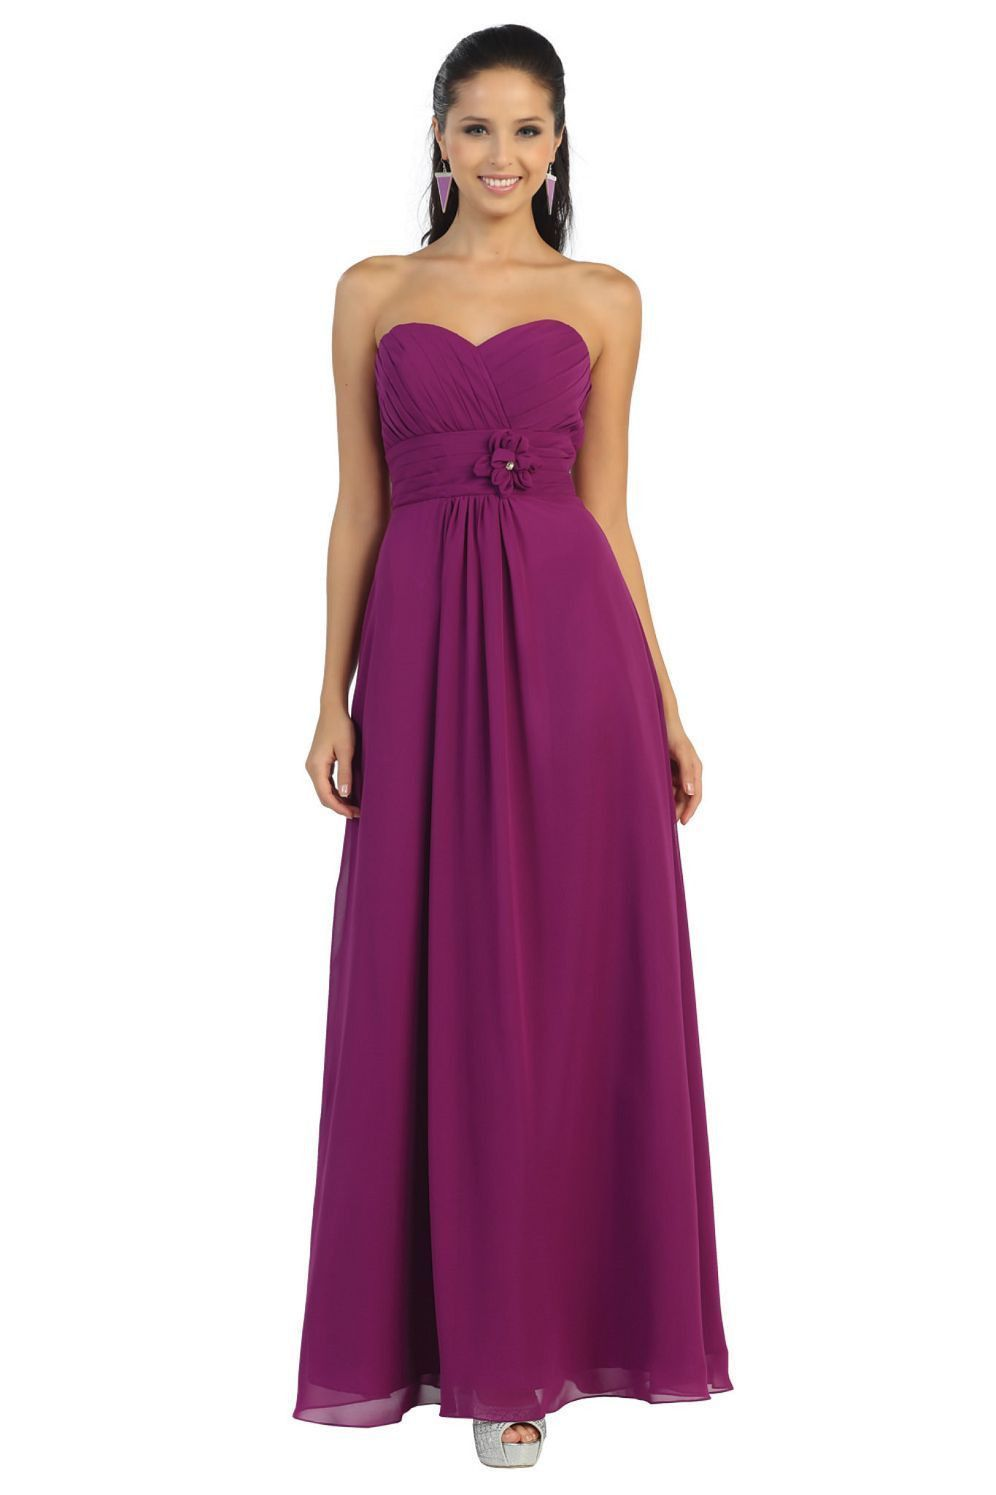 Thedressoutlet long chiffon plus size bridesmaid formal evening